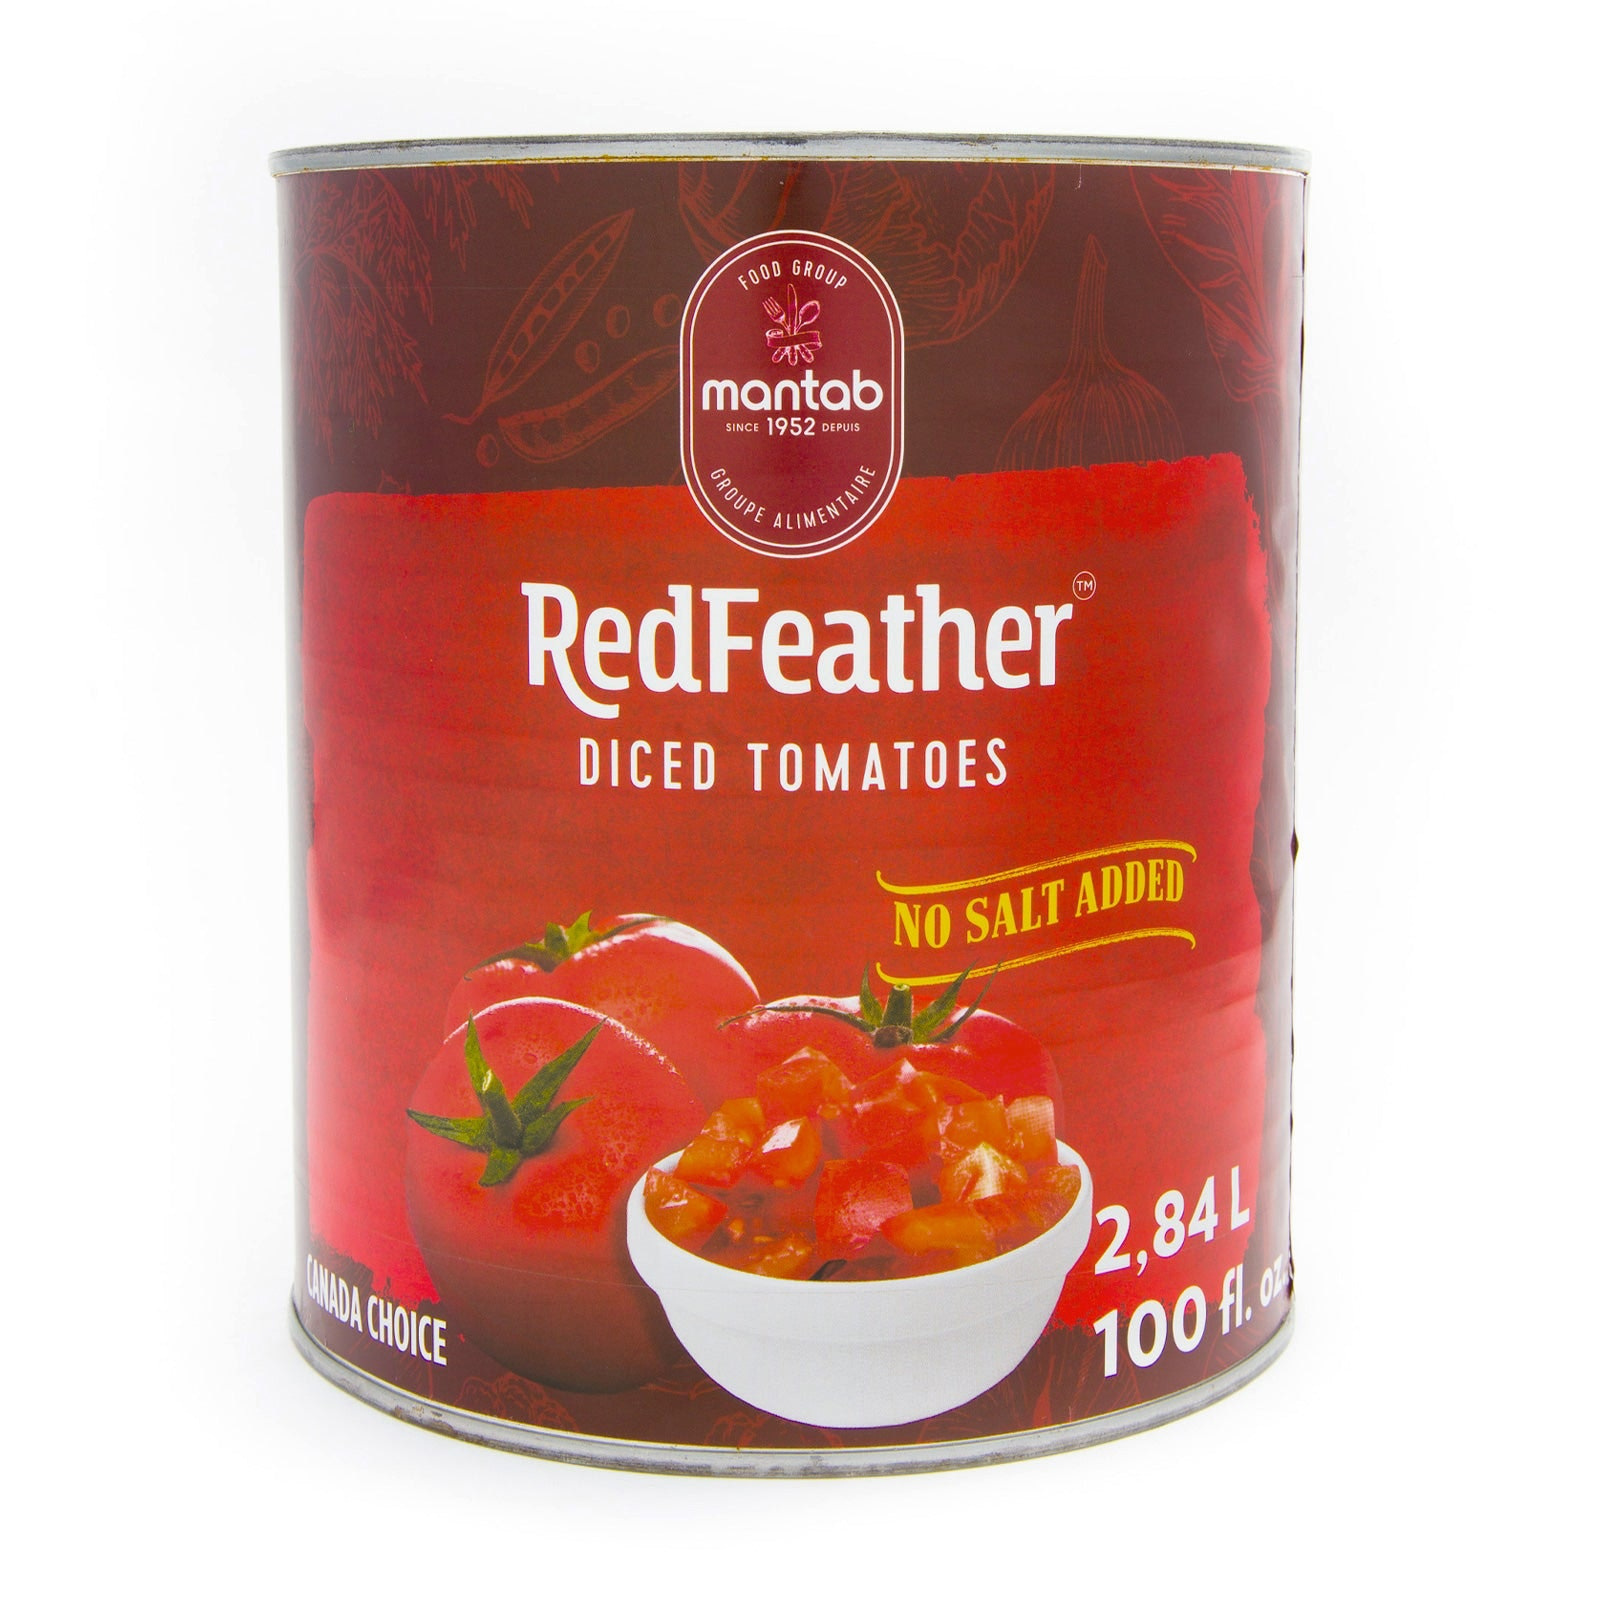 RED FEATHER Diced tomatoes